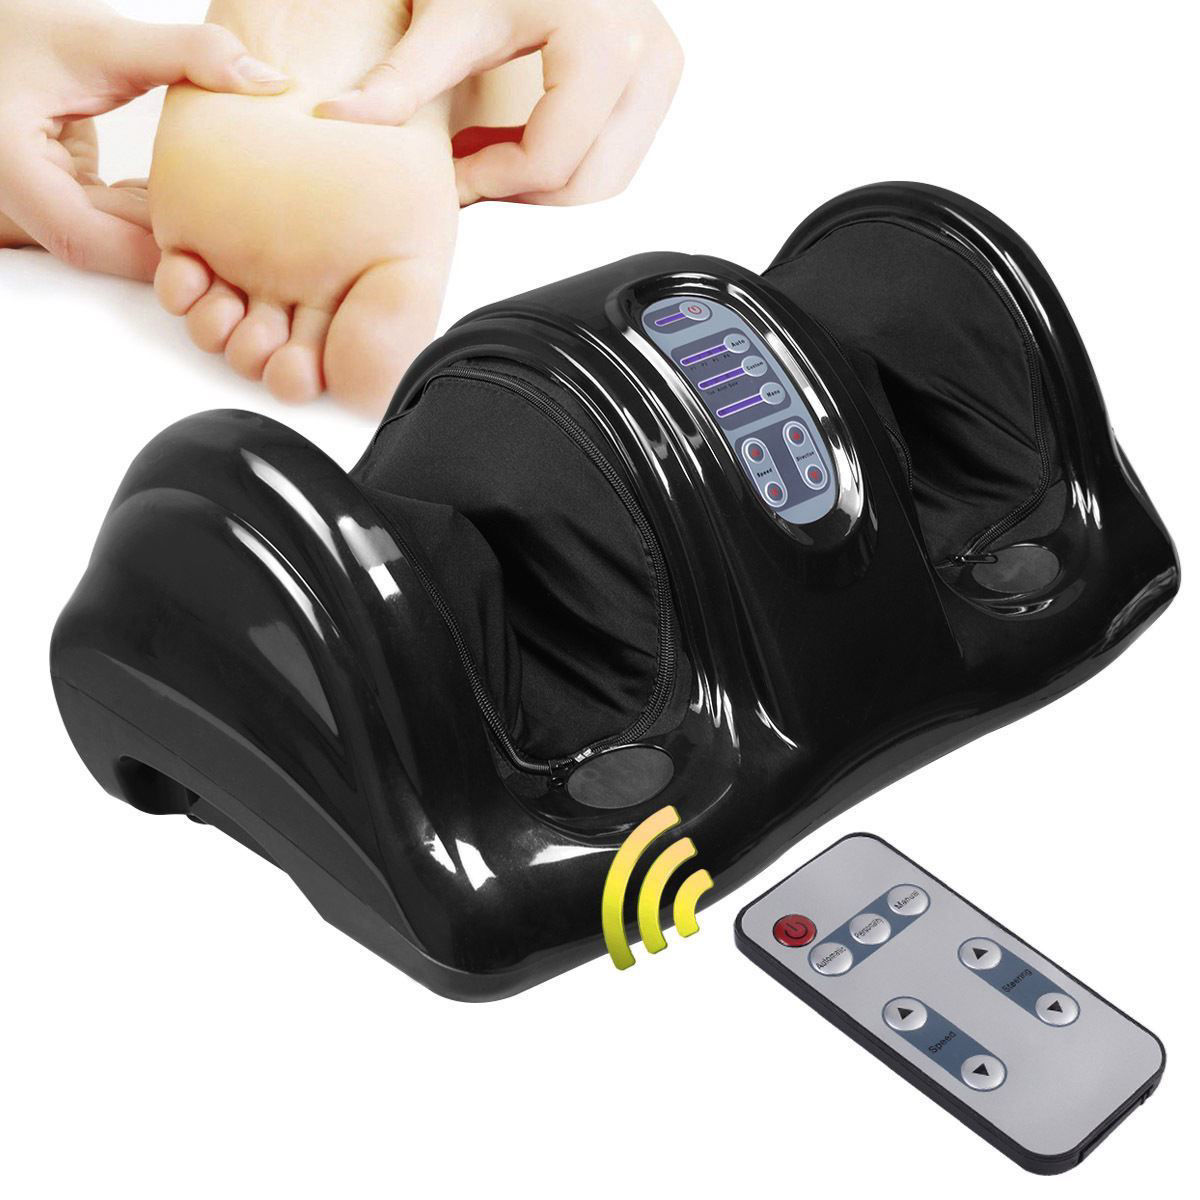 Picture of Foot Massager with Remote Shiatsu